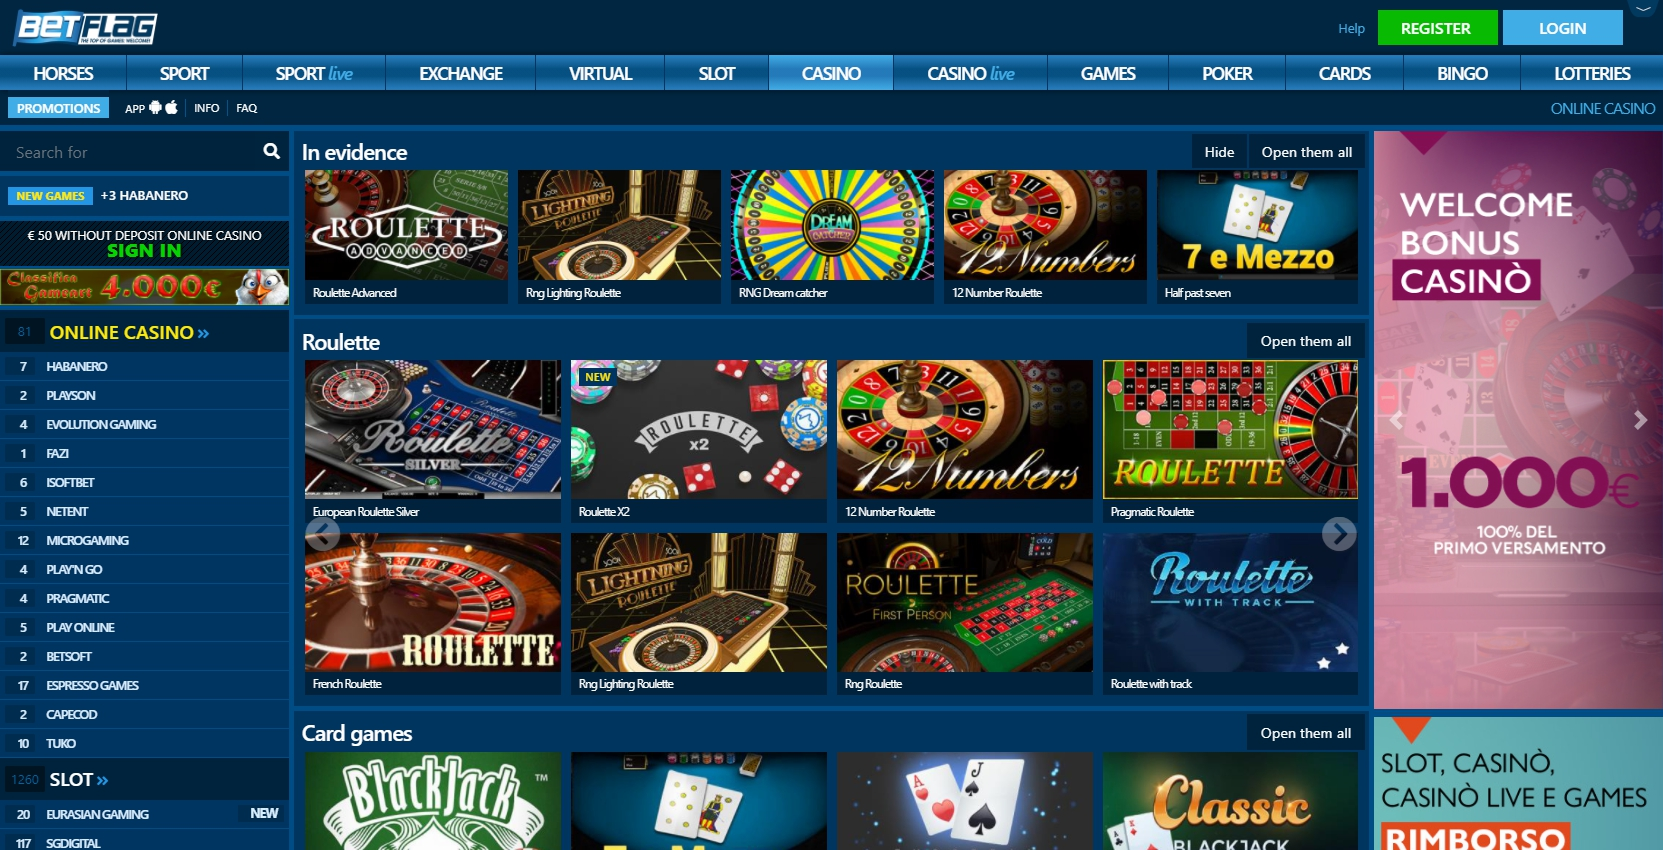 Betflag Casino Games